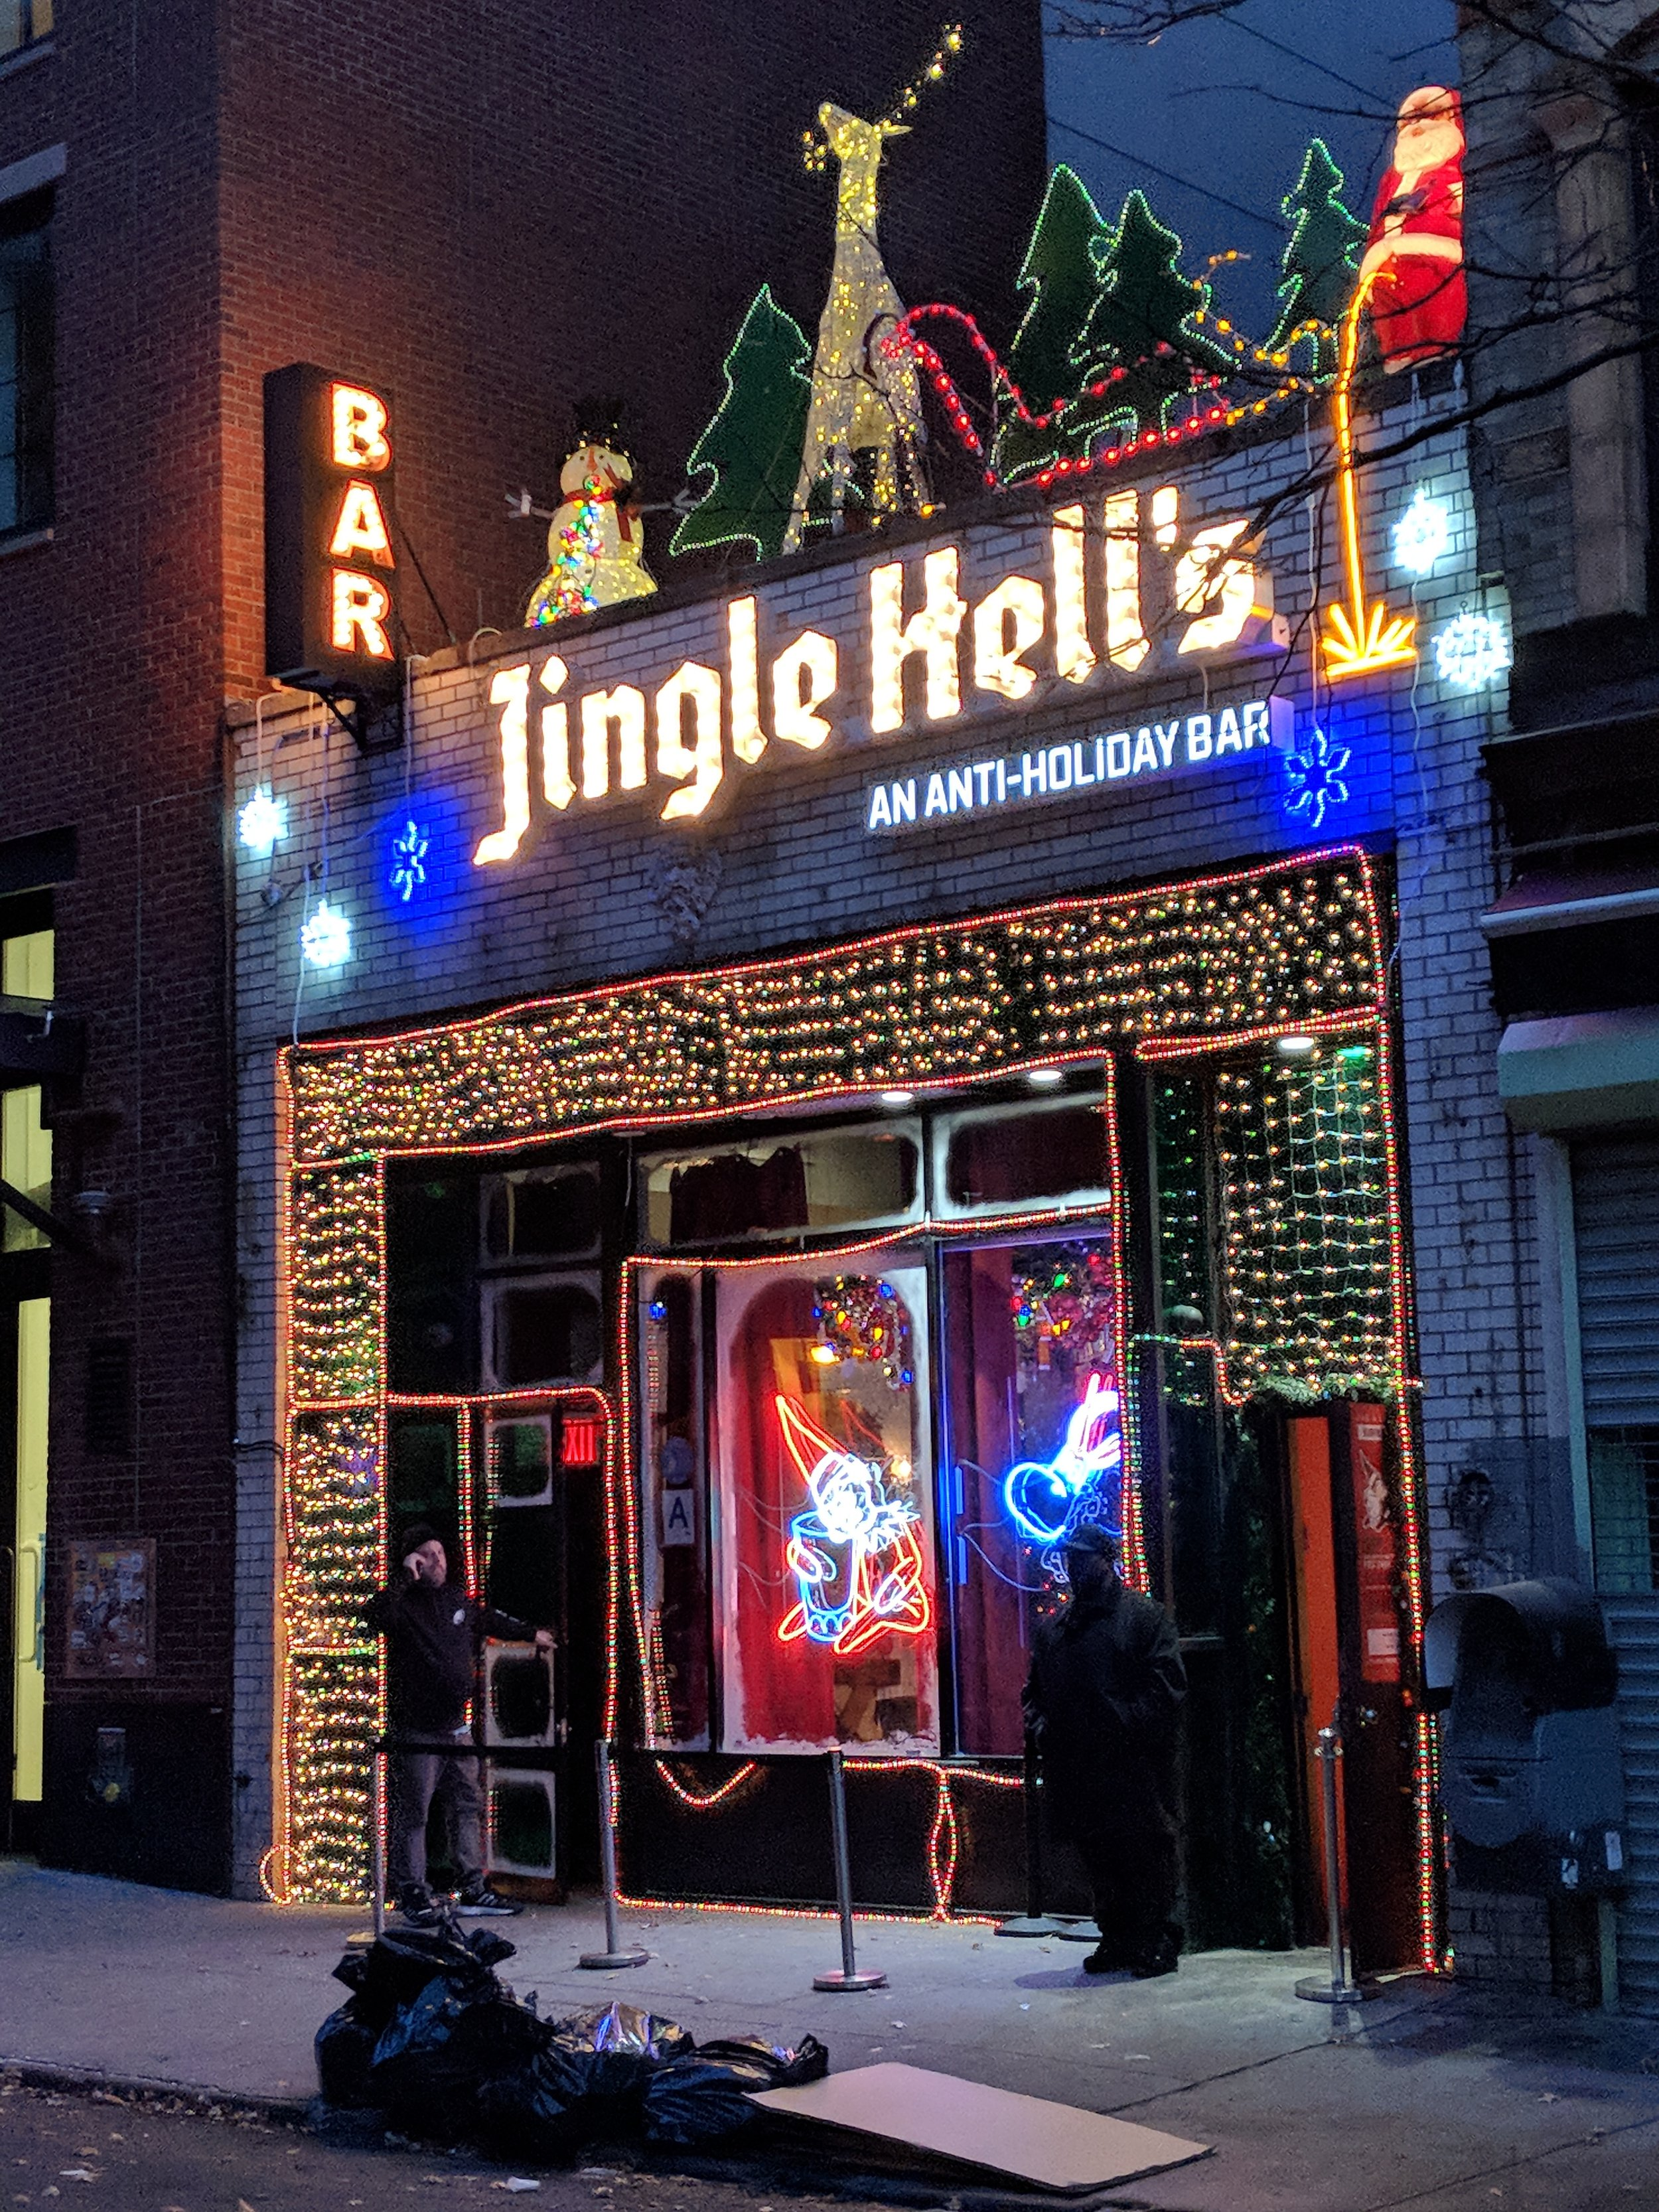 My favorite bar this season. Hilarious inside and out. Very creative.